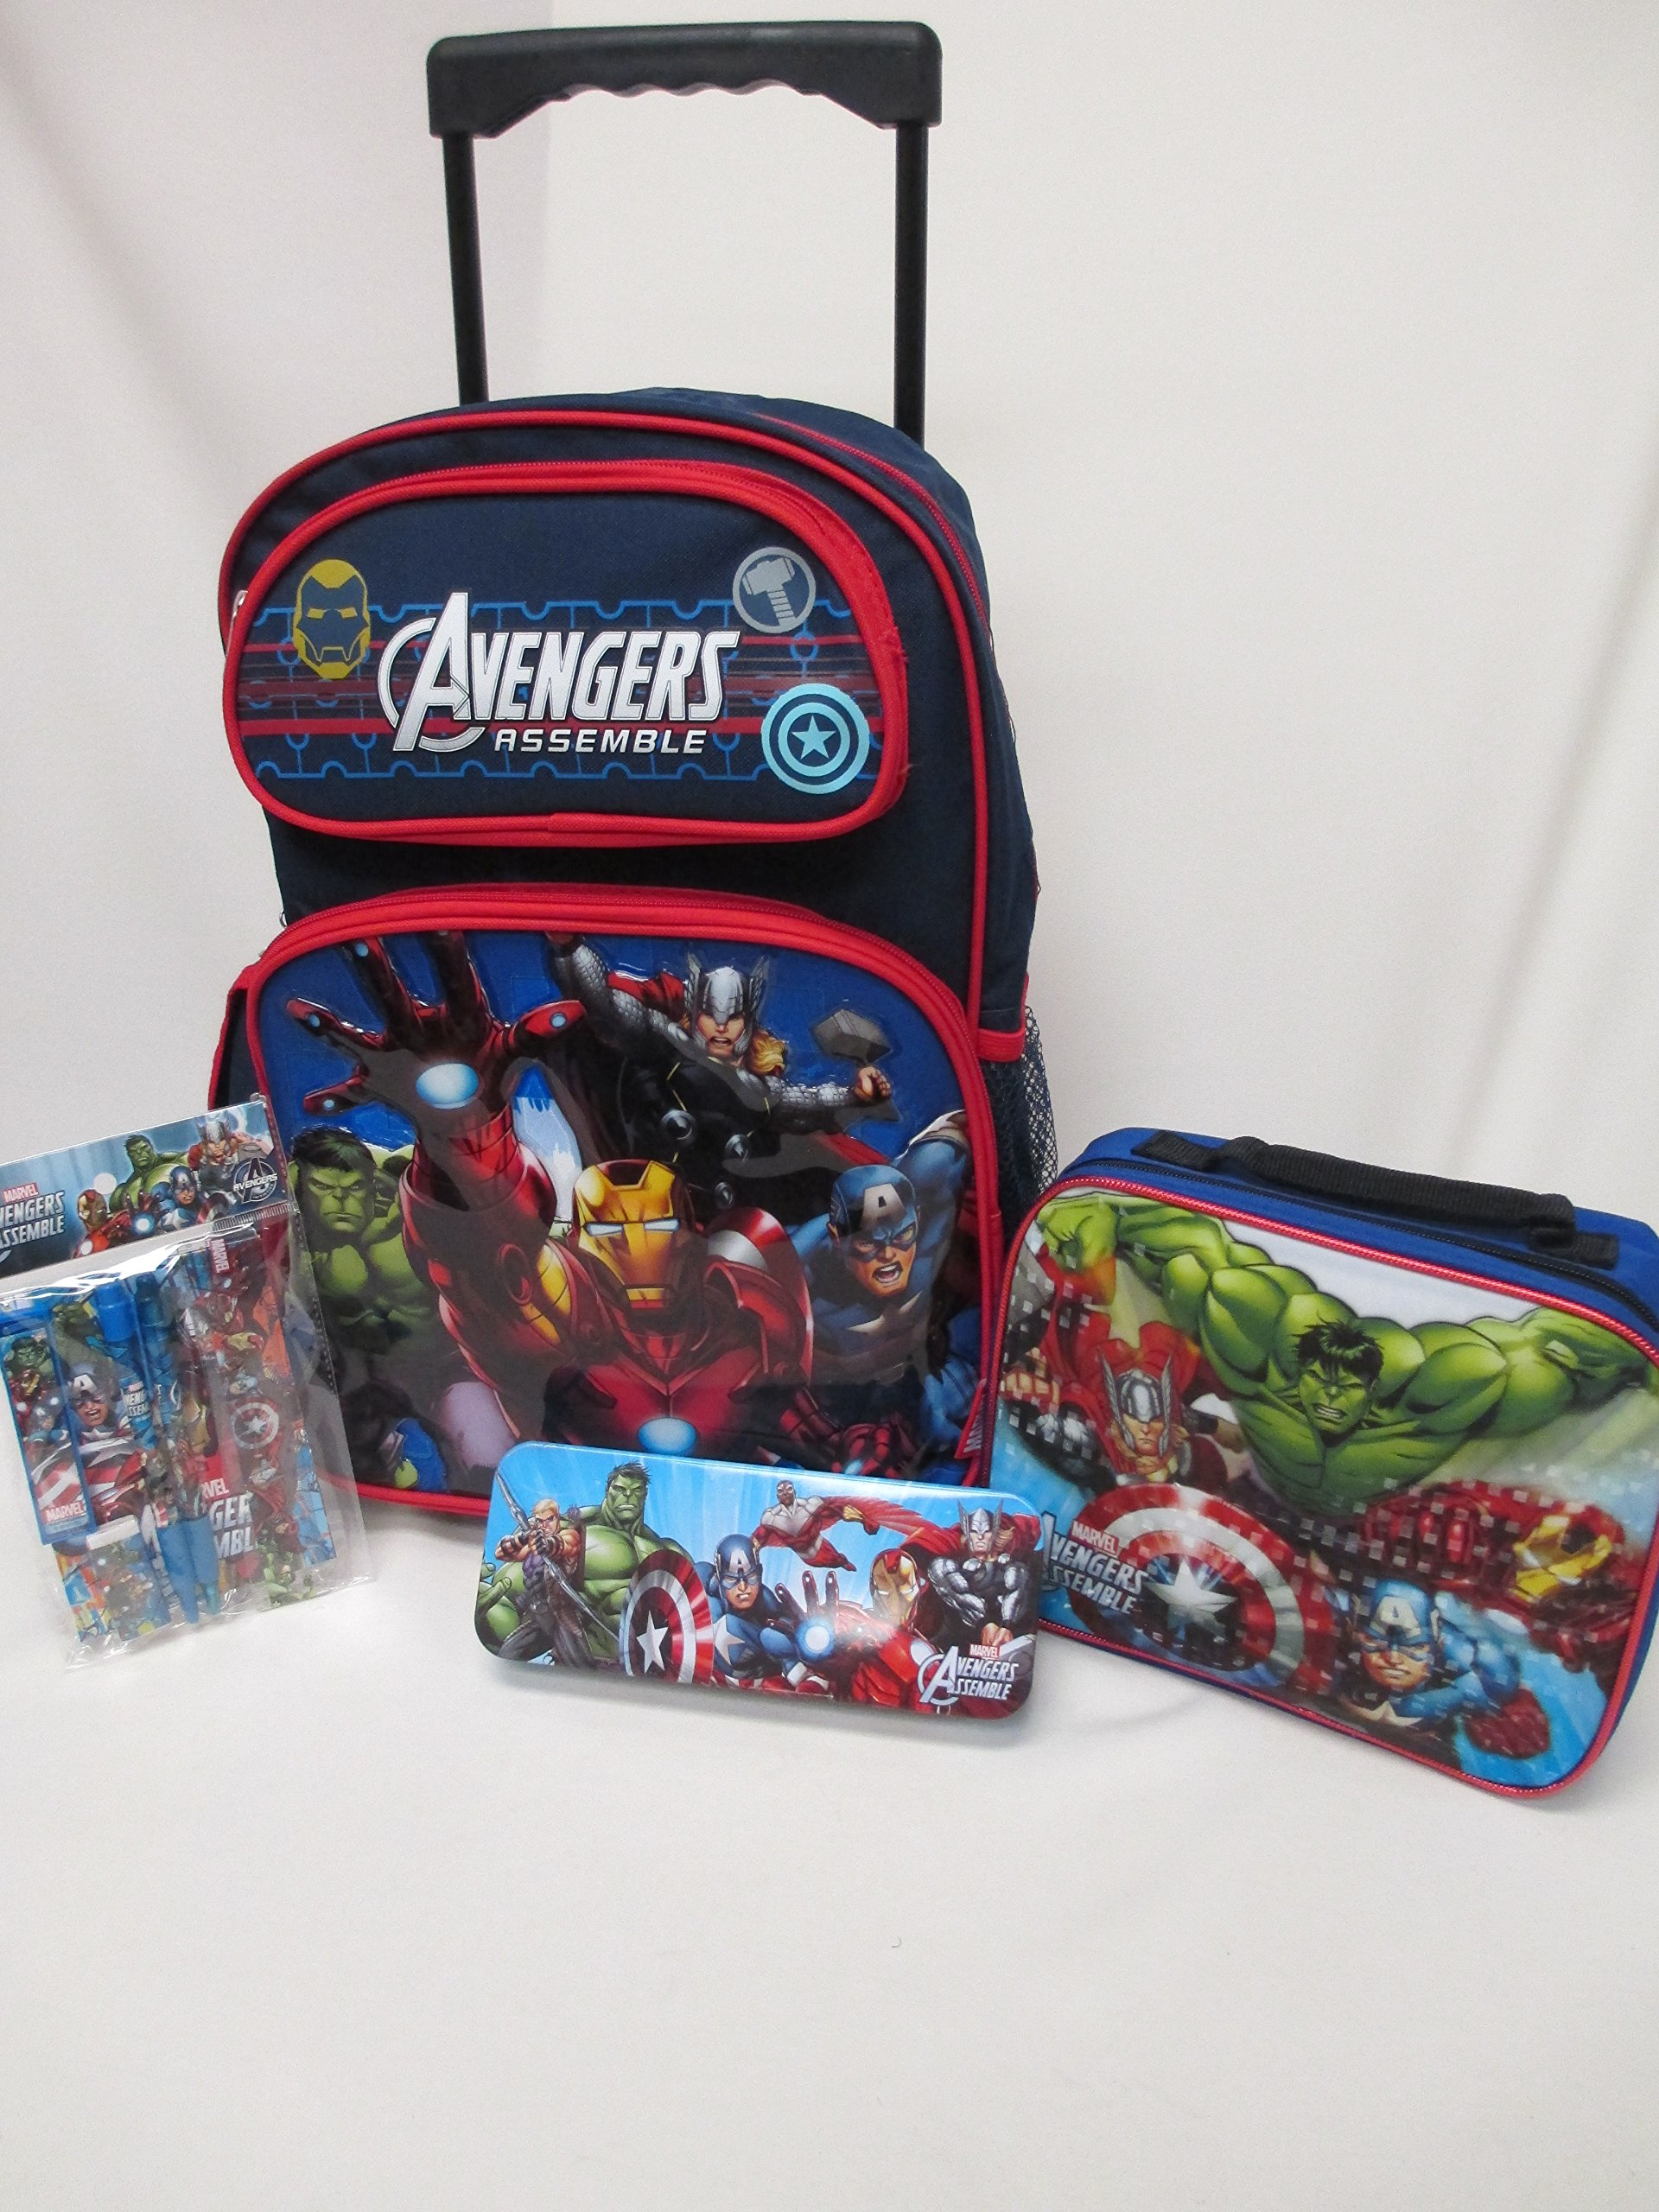 Avengers Assemble Marvel Large 16'' Rolling Backpack Roller Wheeled Book Bag, Lunch Box, Pencil Case & Stationery Set by Bag2School